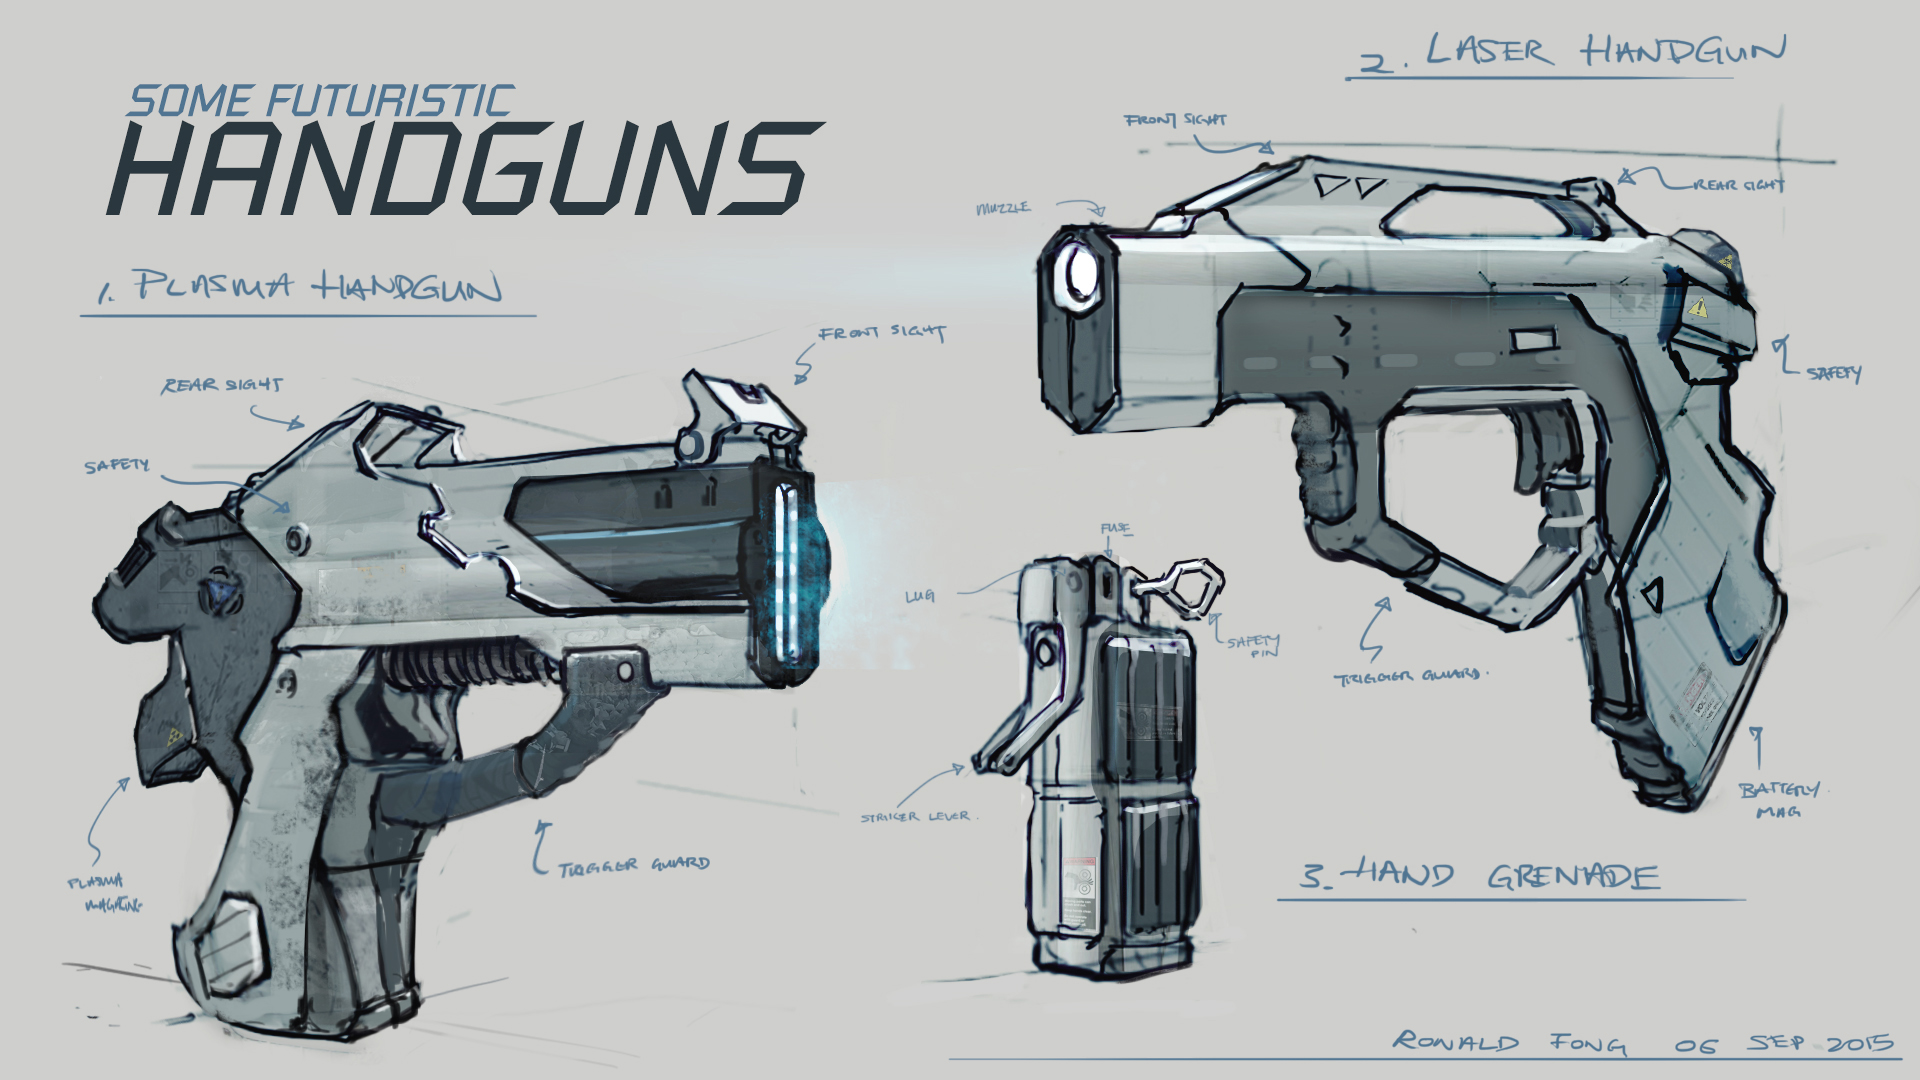 Designed some futuristic handguns and a grenade. The look is pretty ...